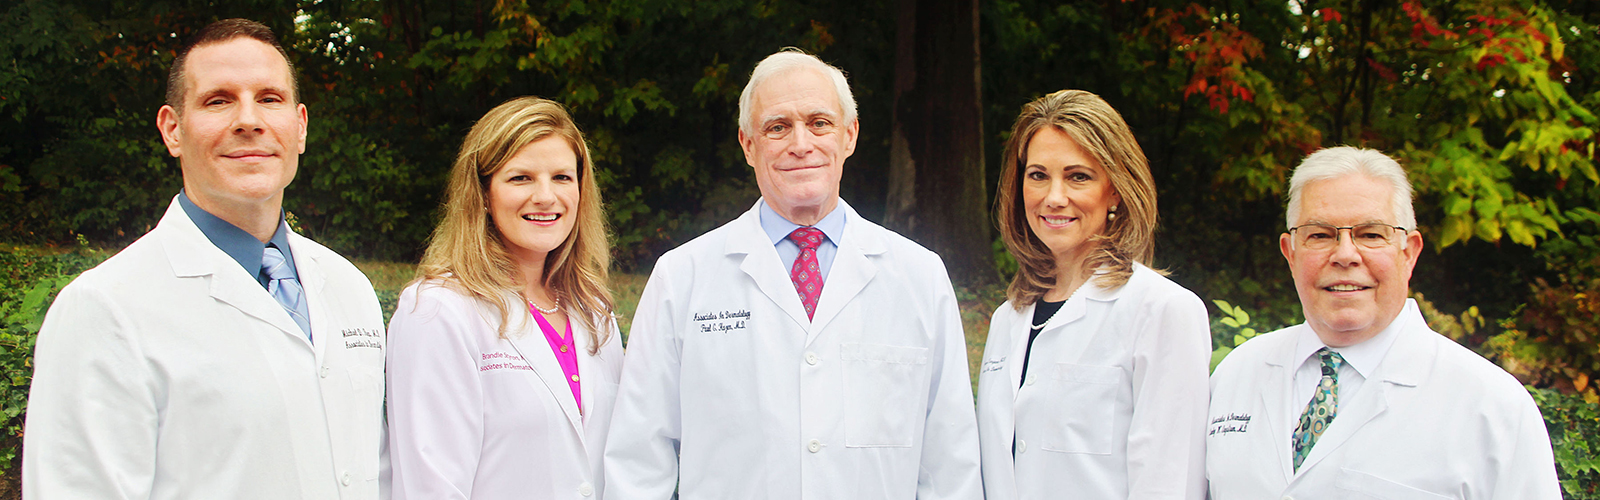 Team Image - Associates In Dermatology